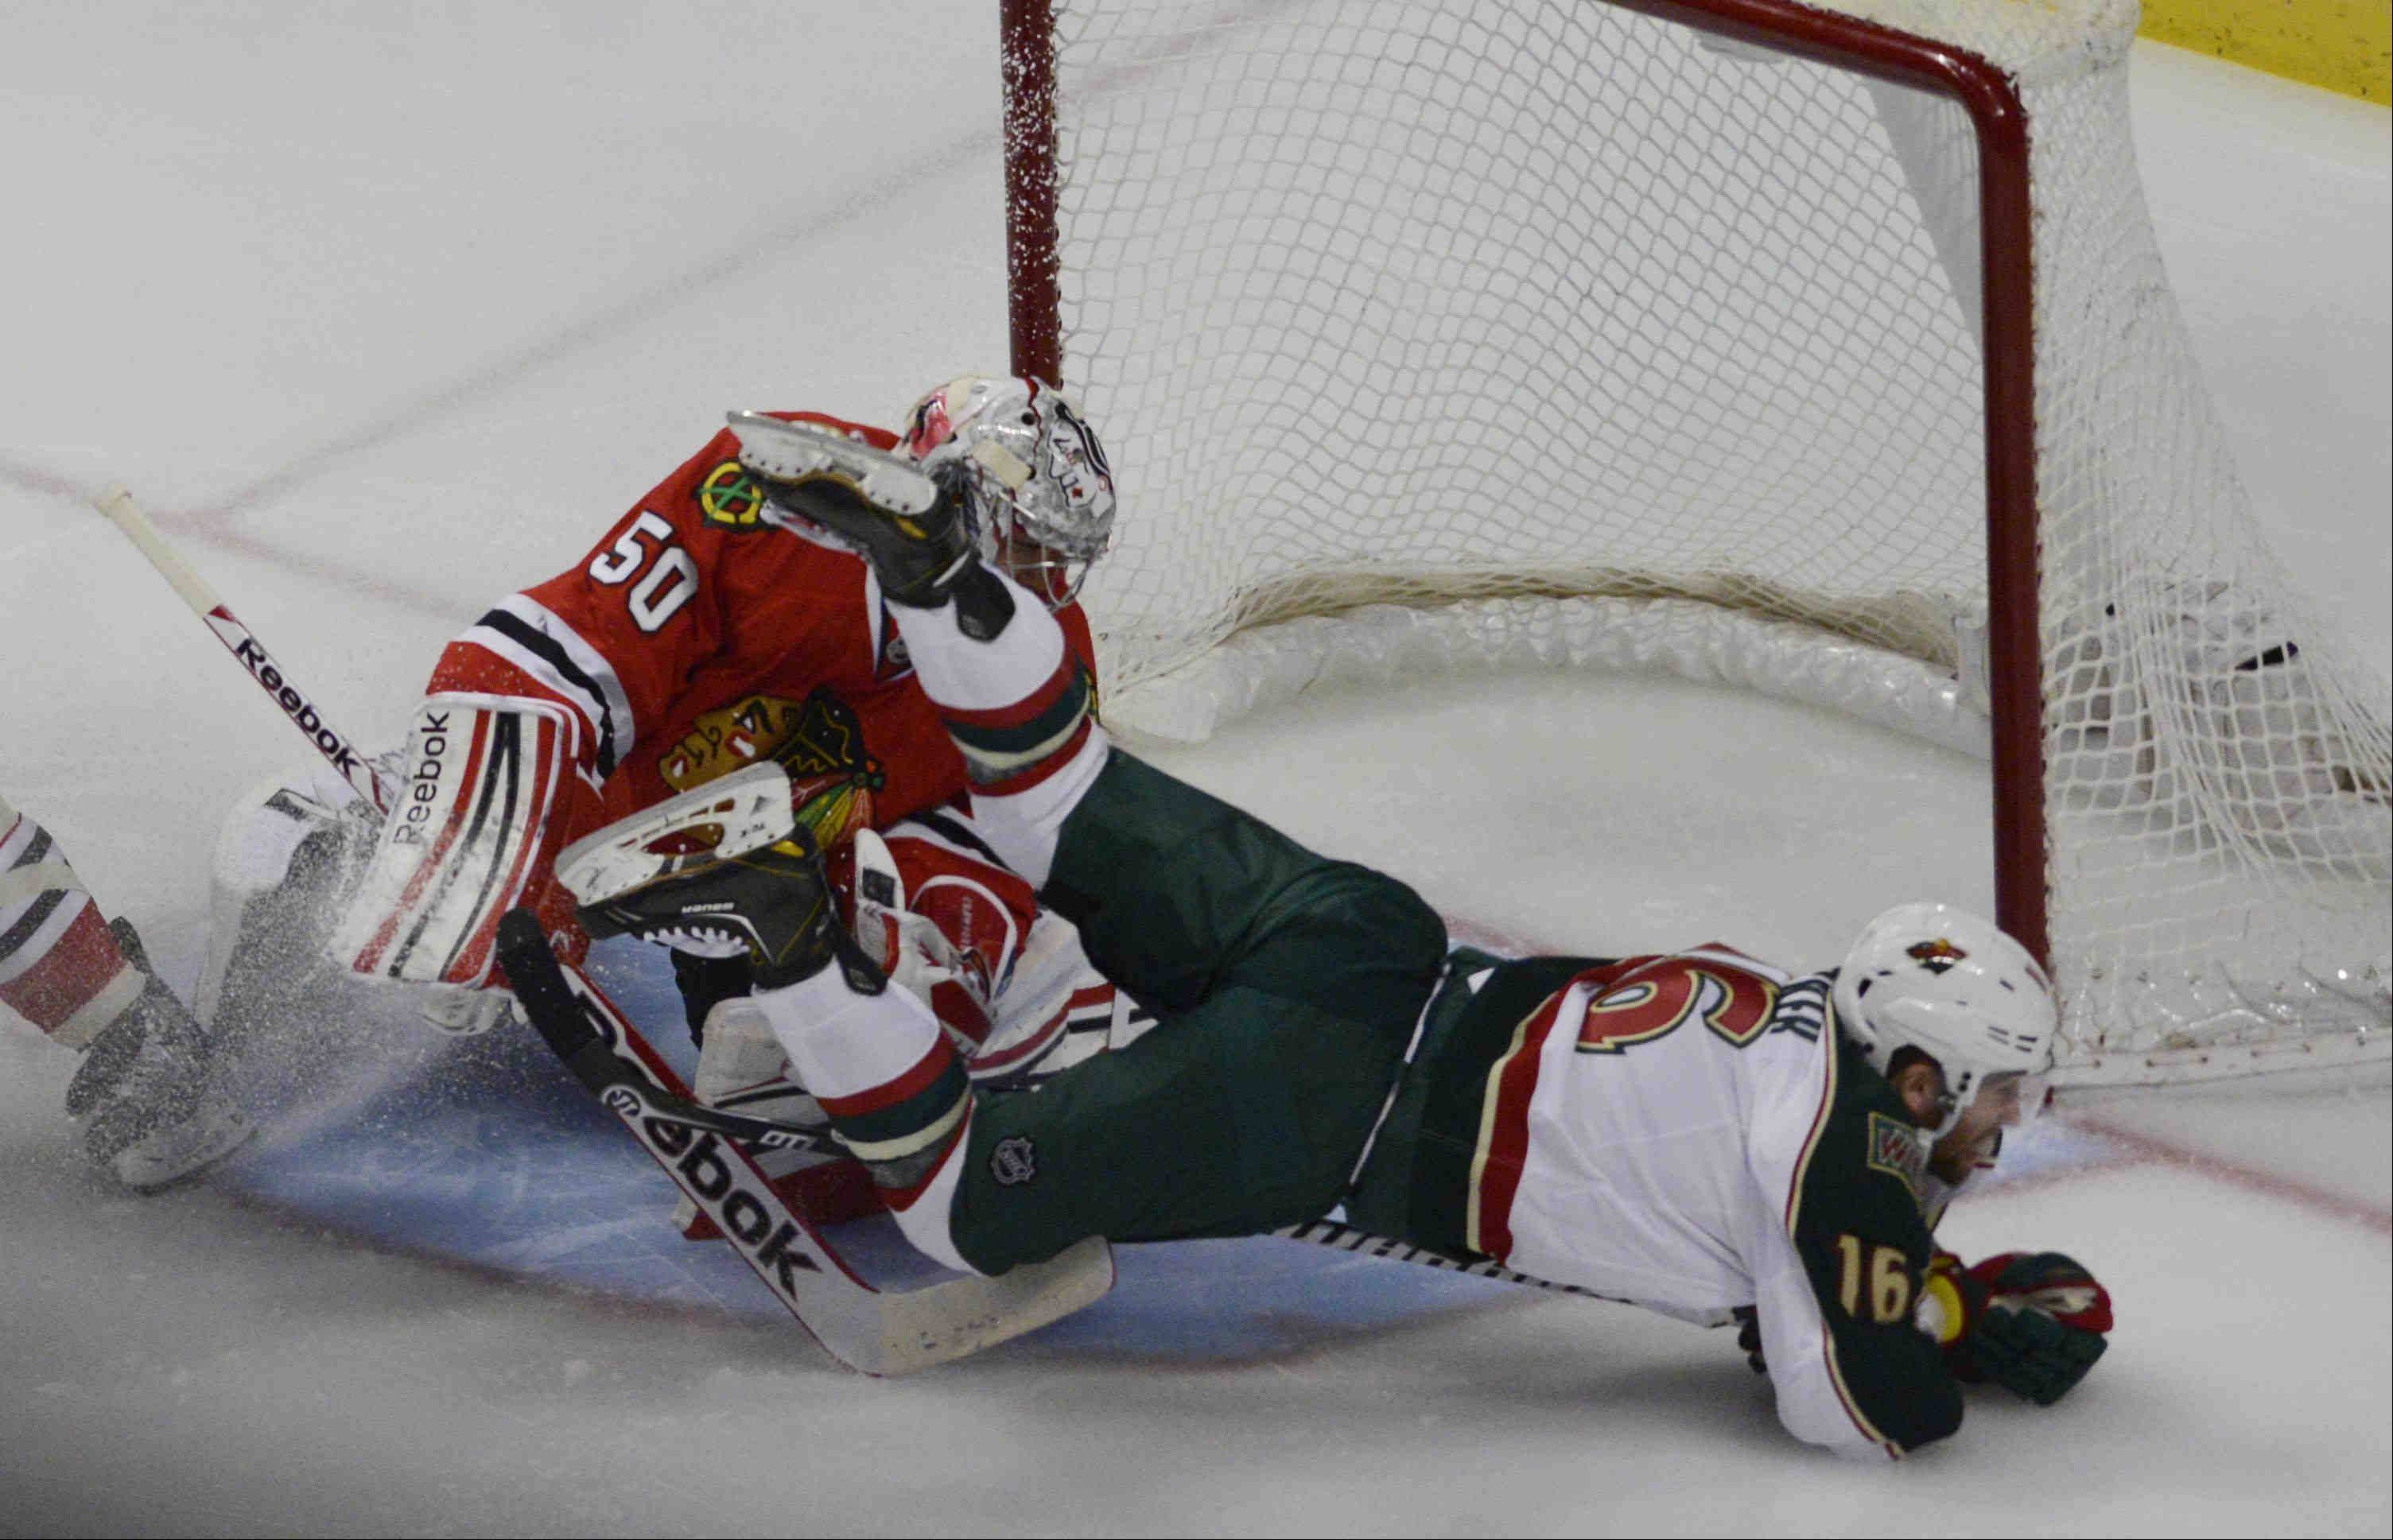 Minnesota Wild left wing Jason Zucker collides with Chicago Blackhawks goalie Corey Crawford .